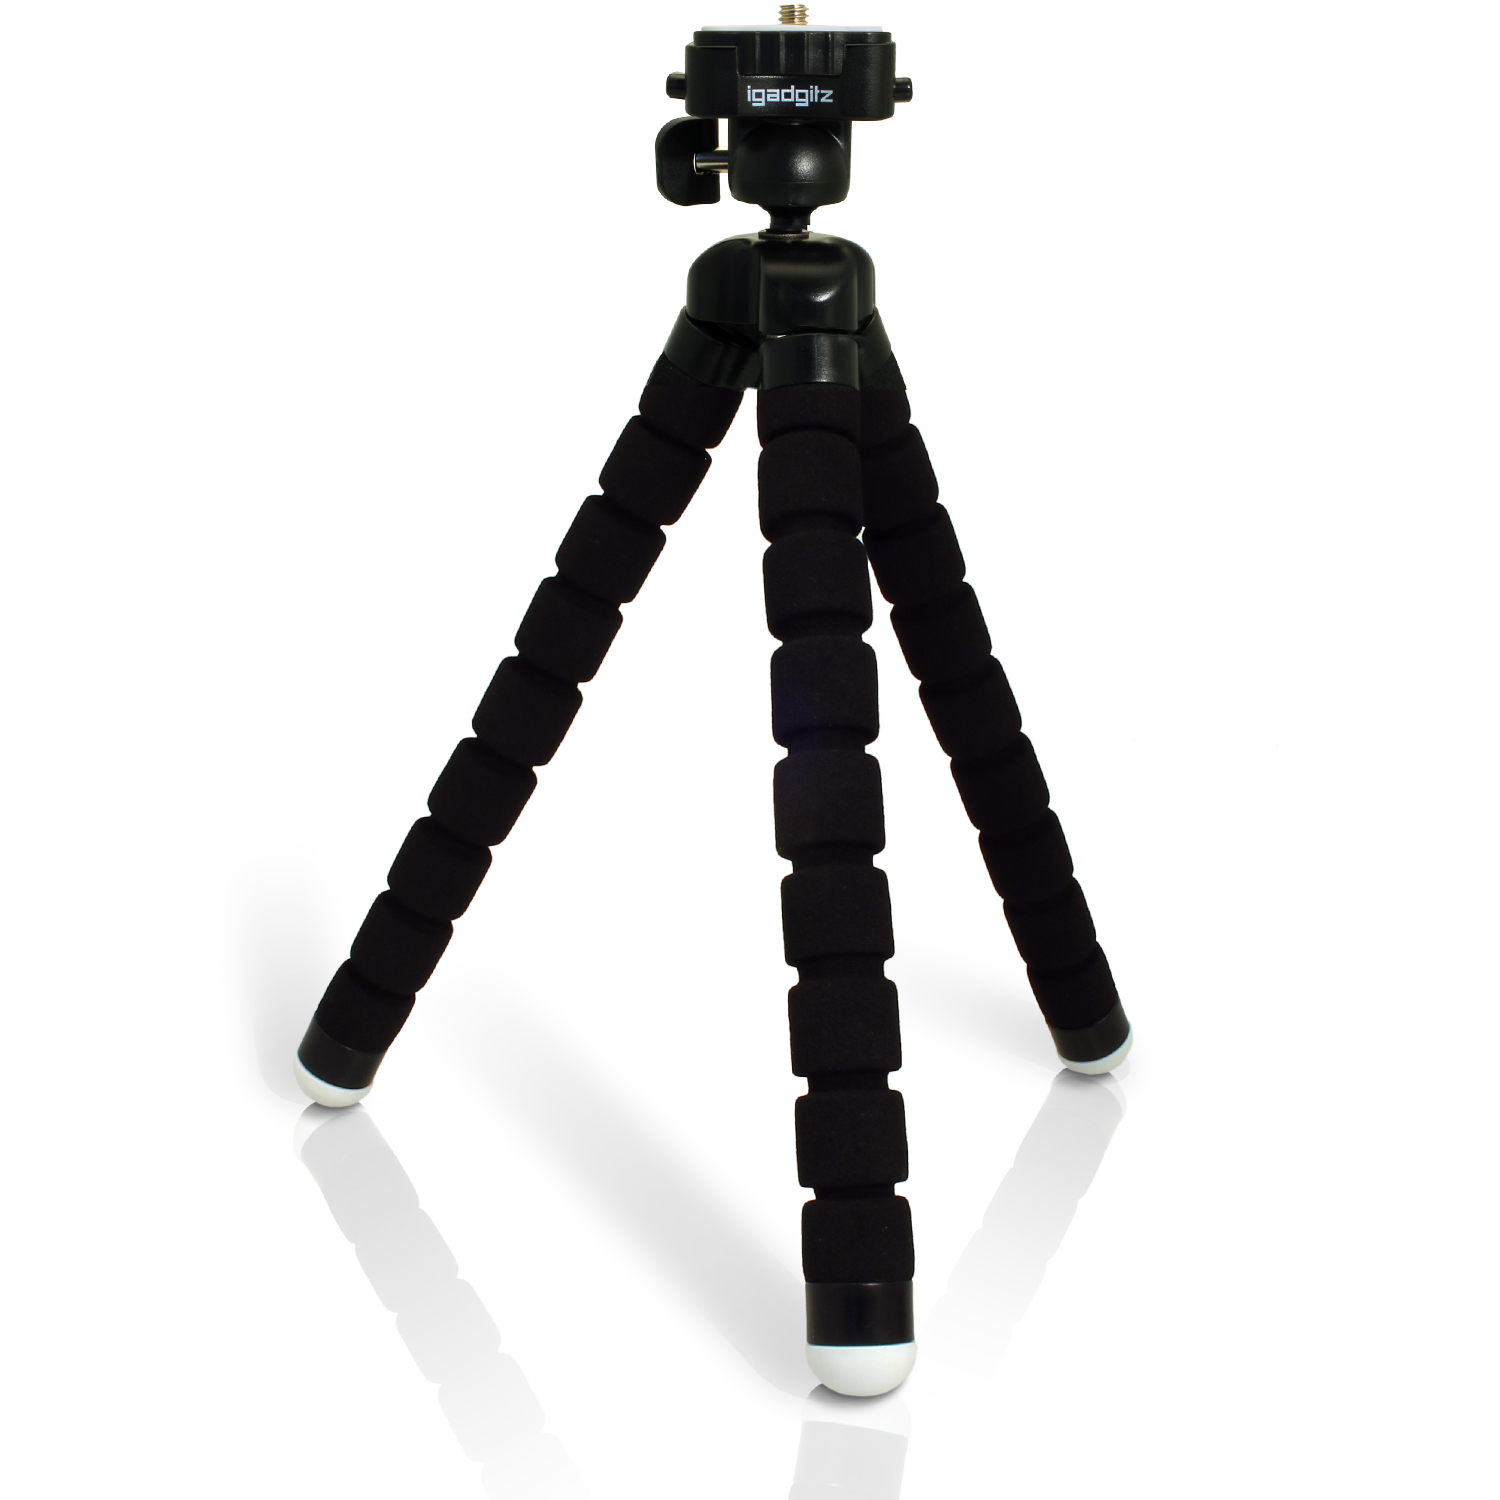 iGadgitz Lightweight Large Universal Flexible Foam Mini Tripod for SLR DSLR Cameras with Quick Release Plate ? Black